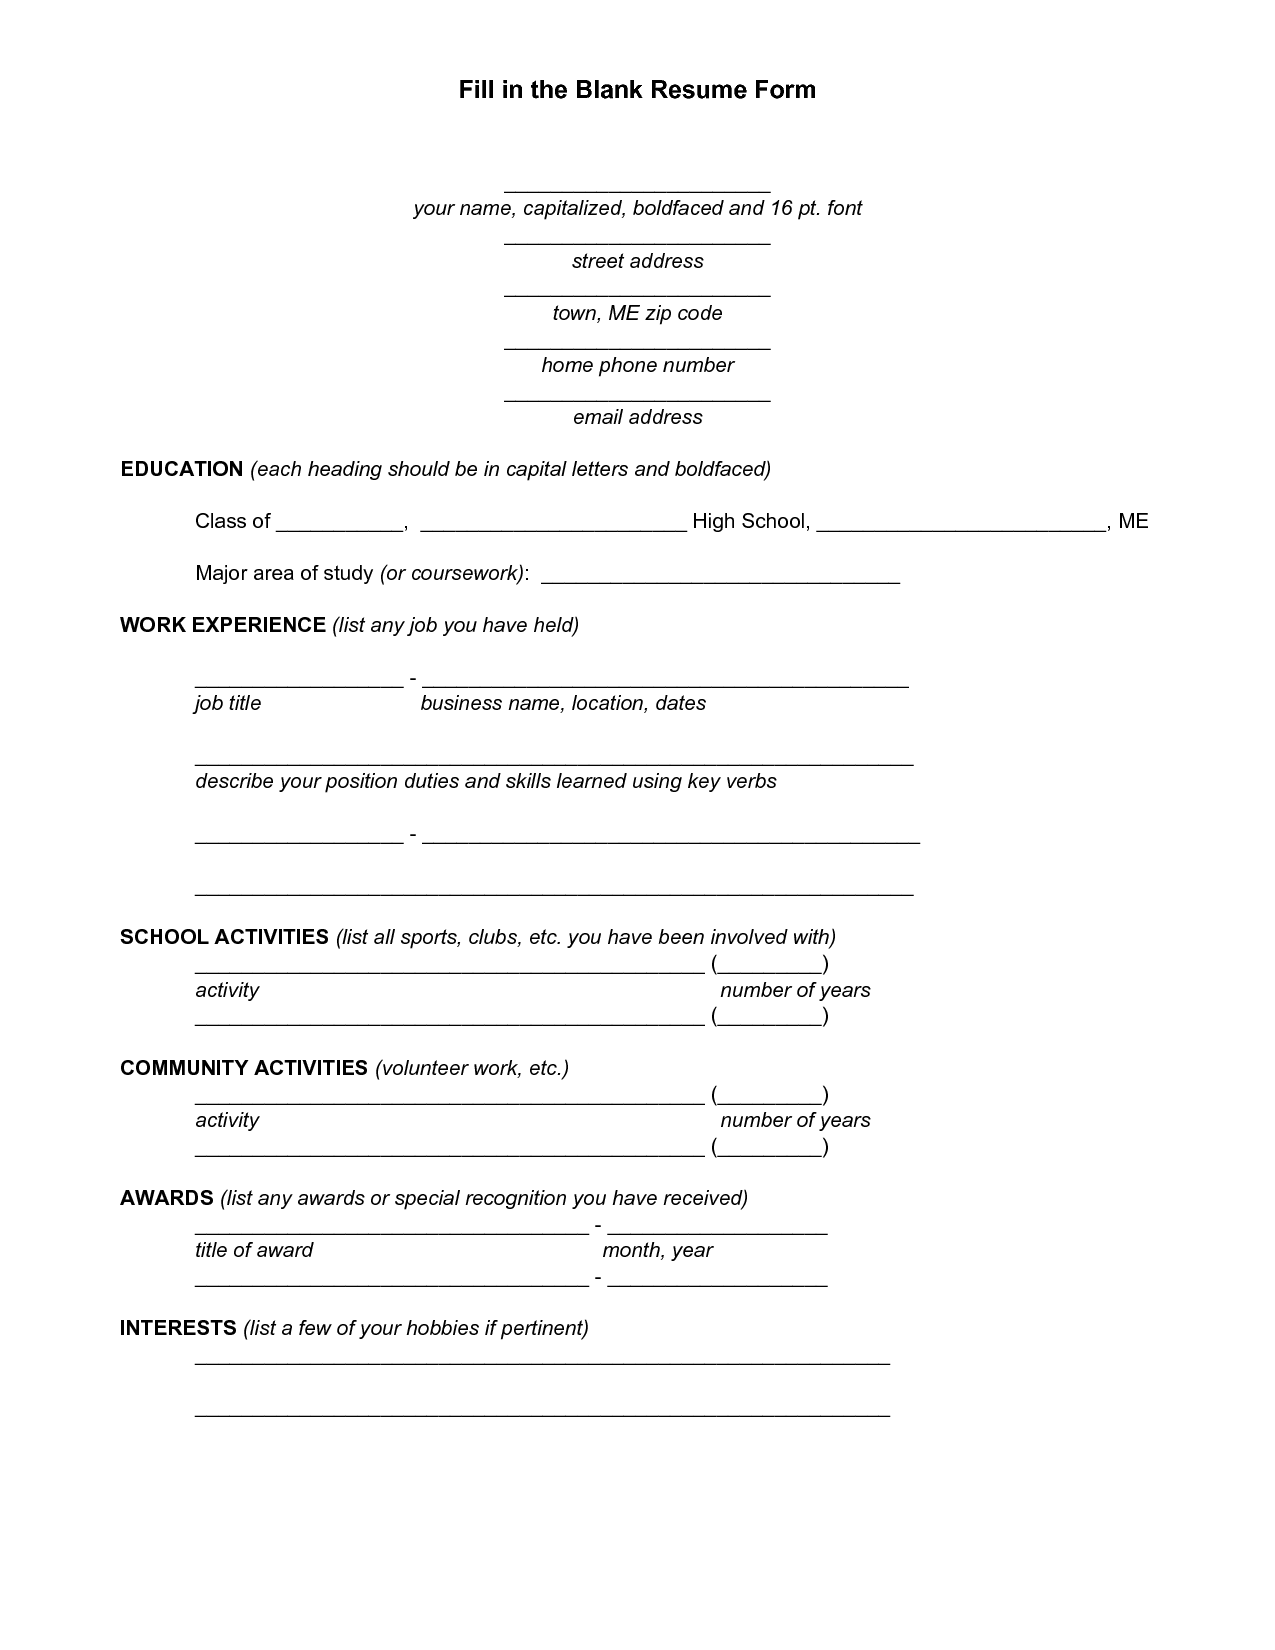 Resume Templates You Can Fill In